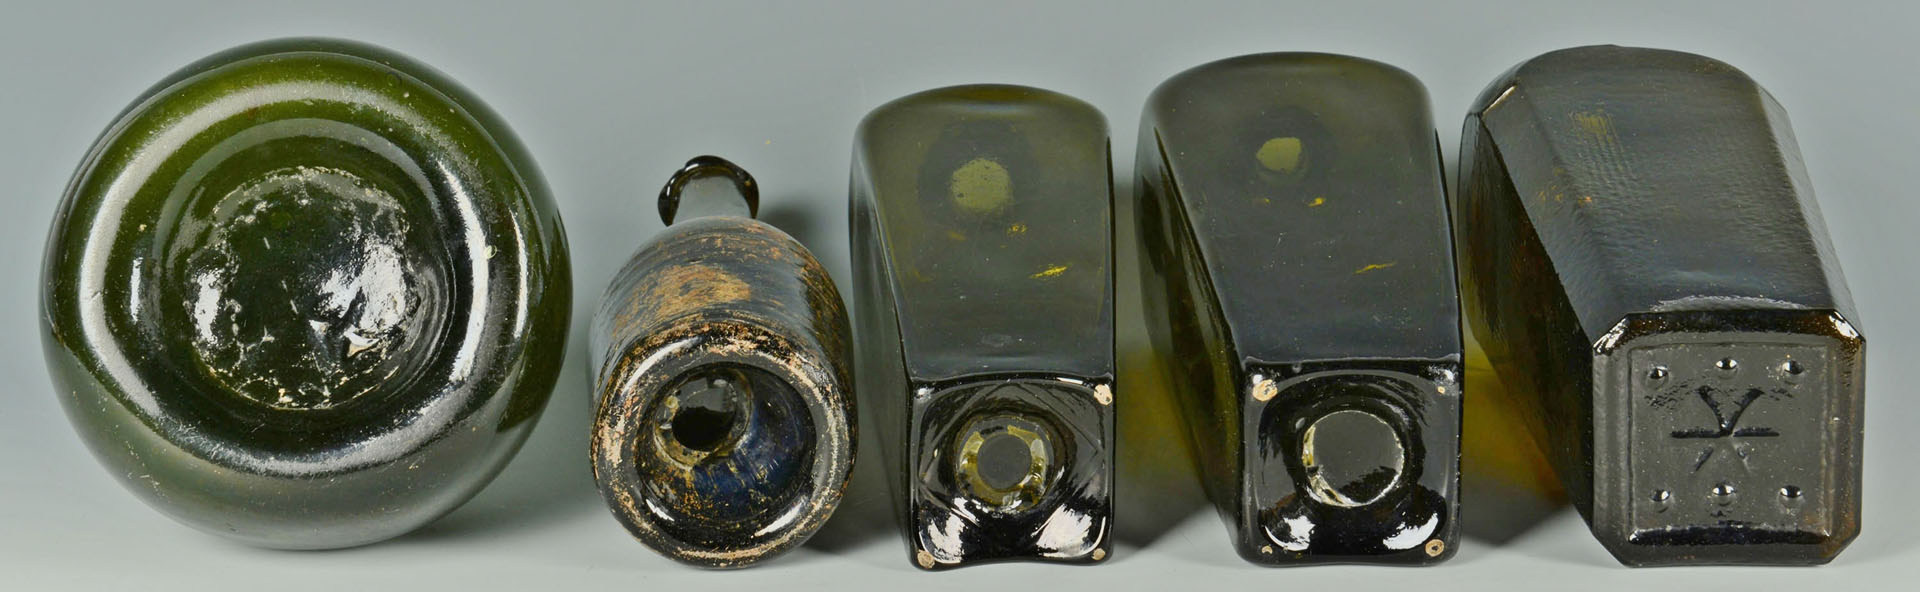 Lot 159: 5 Colored wine & gin bottles, 18th/19th c.